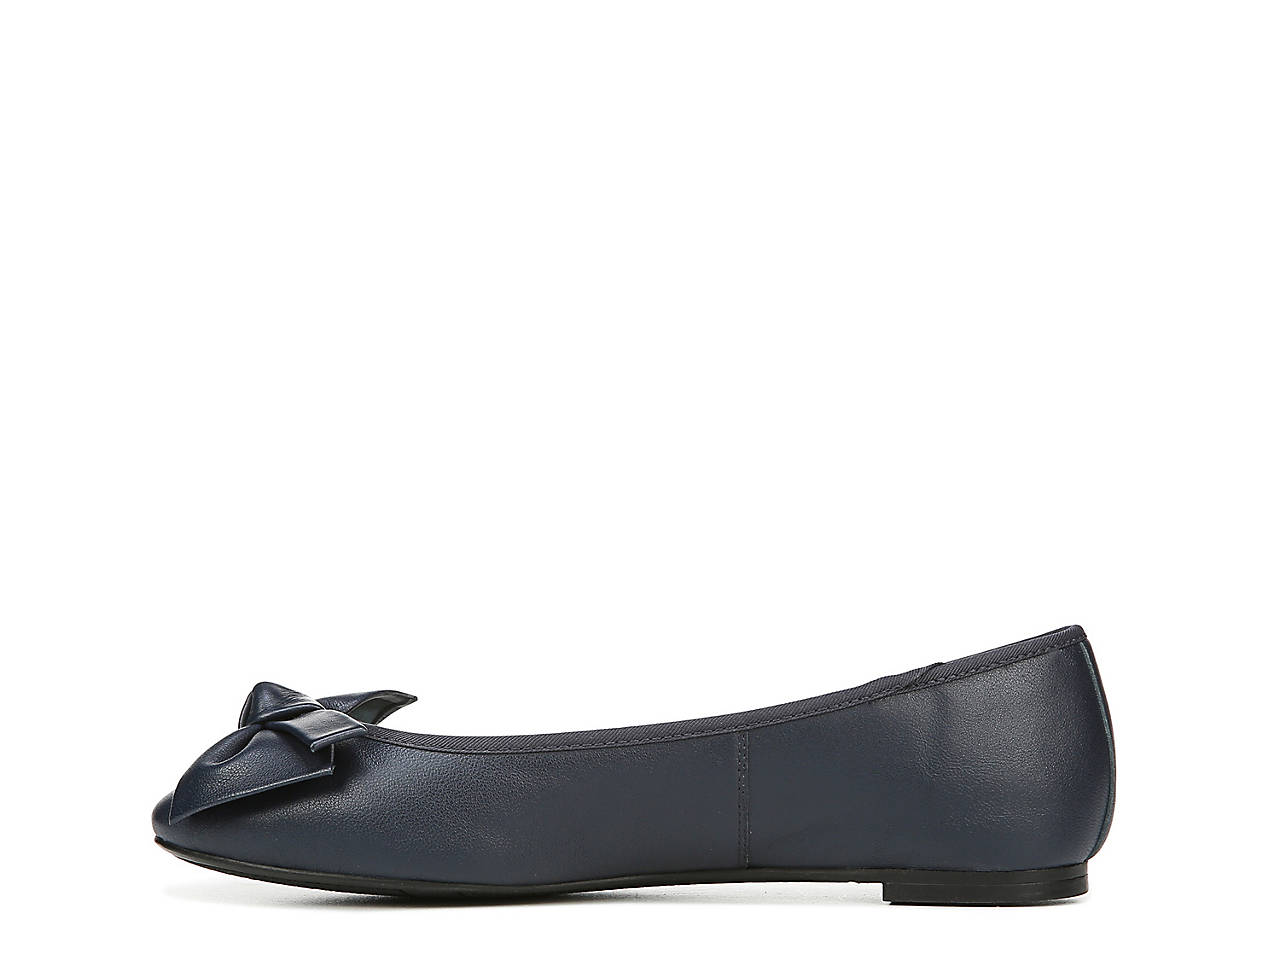 6bfe2ddce495 Circus by Sam Edelman Connie Ballet Flat Women s Shoes